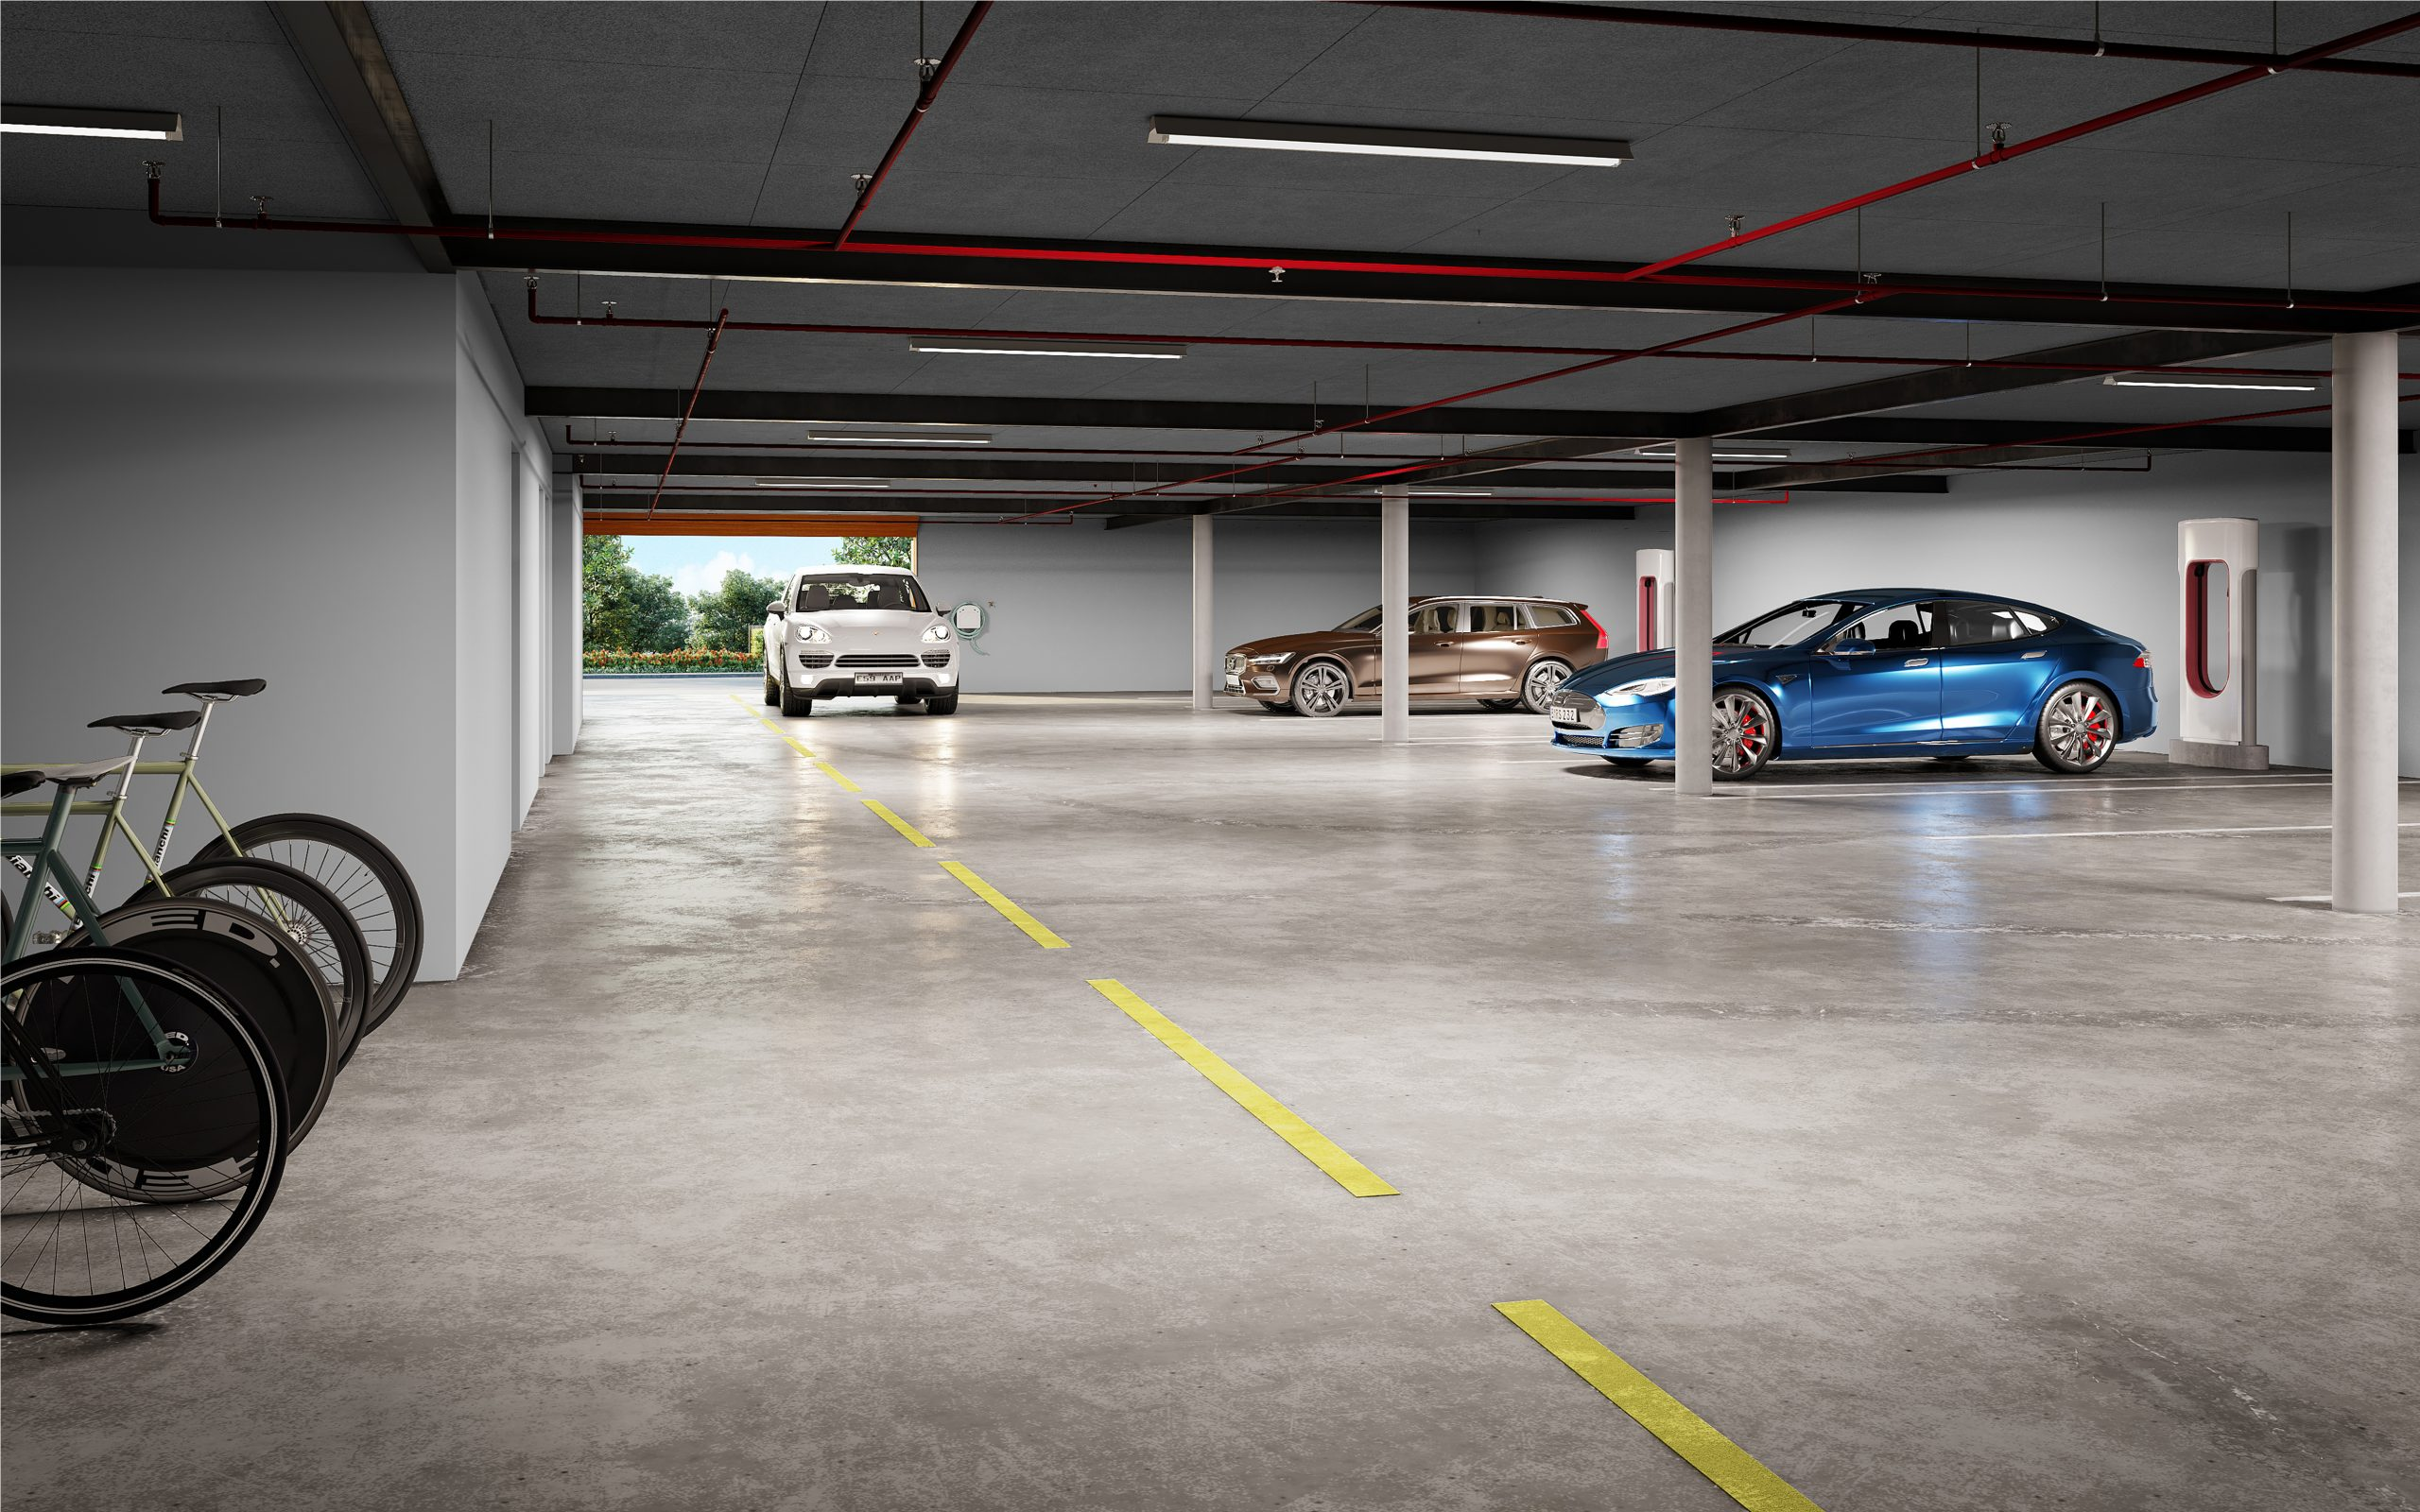 Garage underground electric vehicle